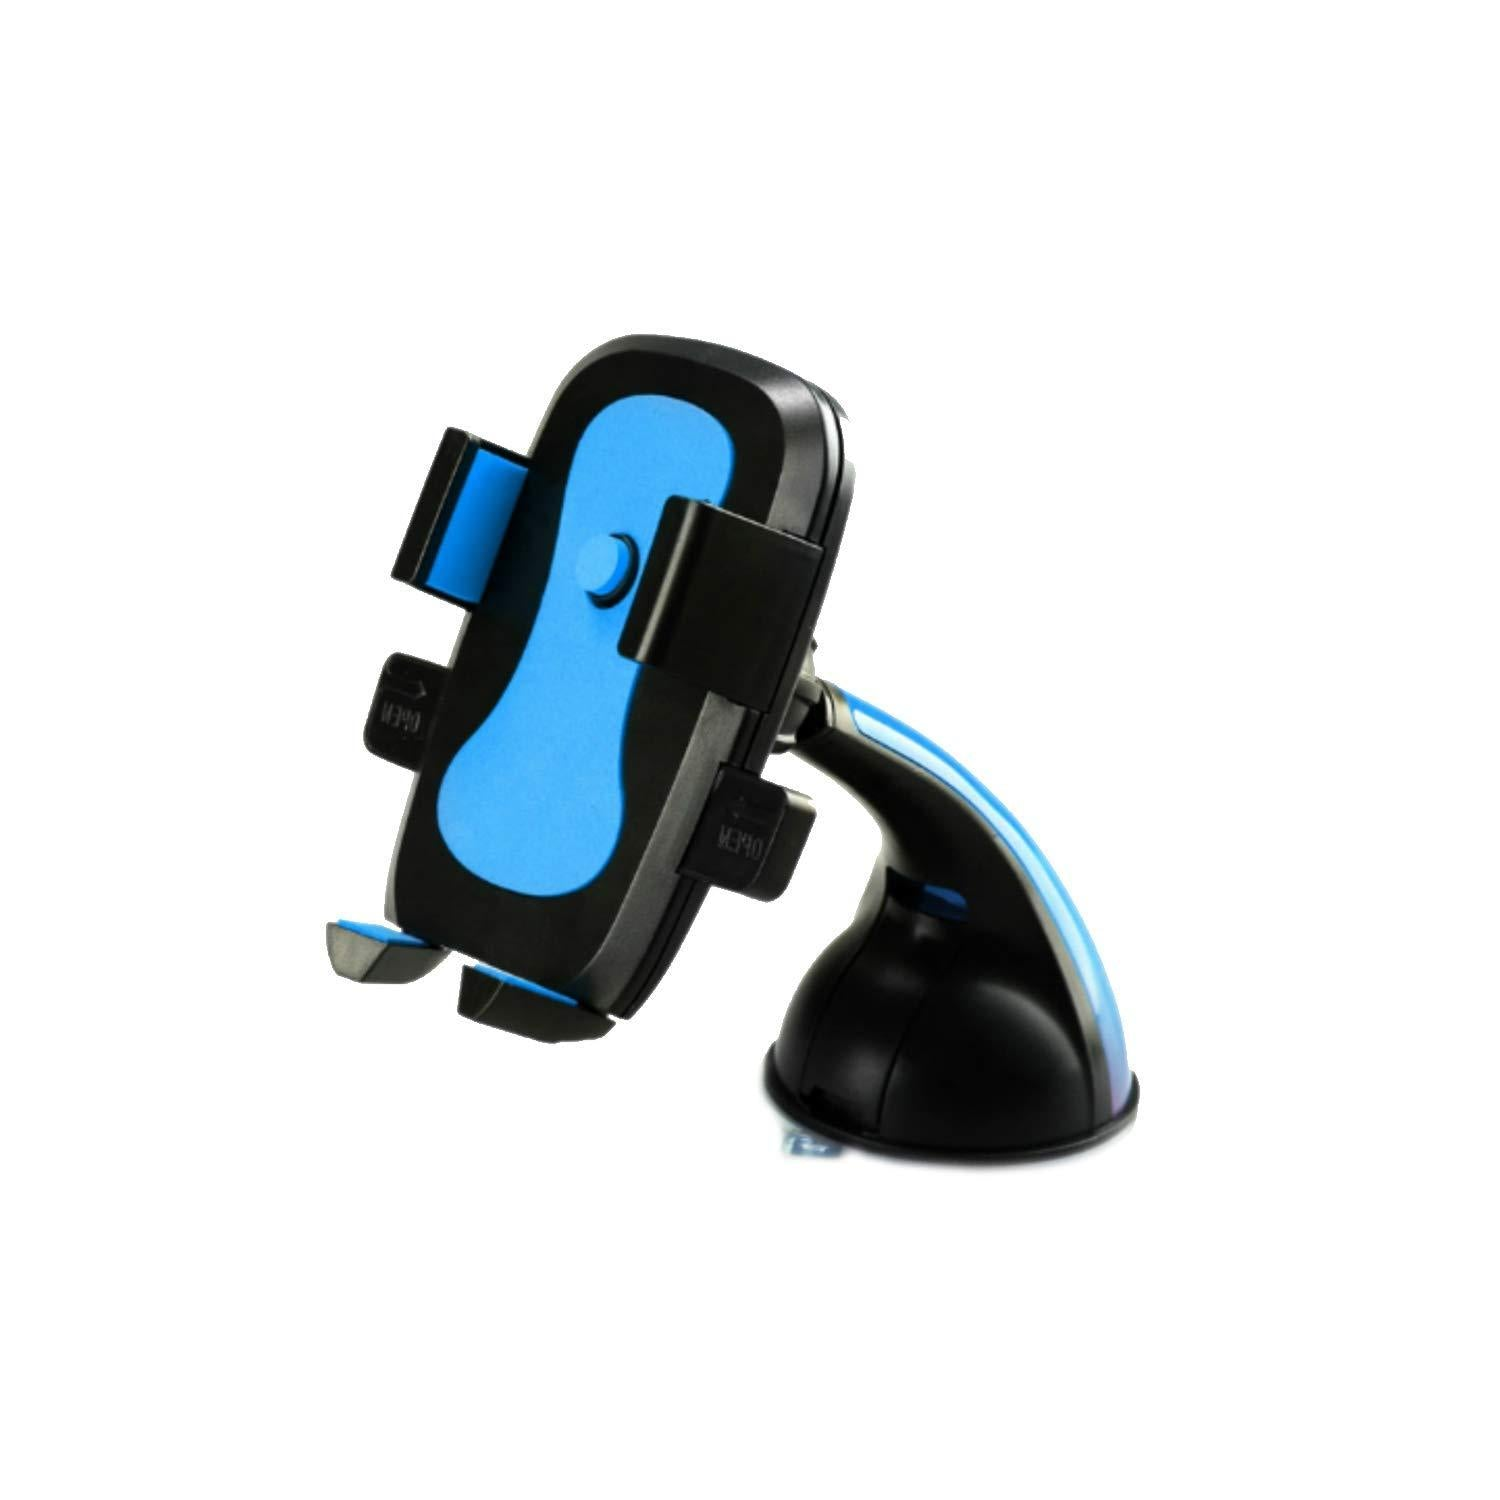 286 Mobile Holder (360 Degree Rotation)